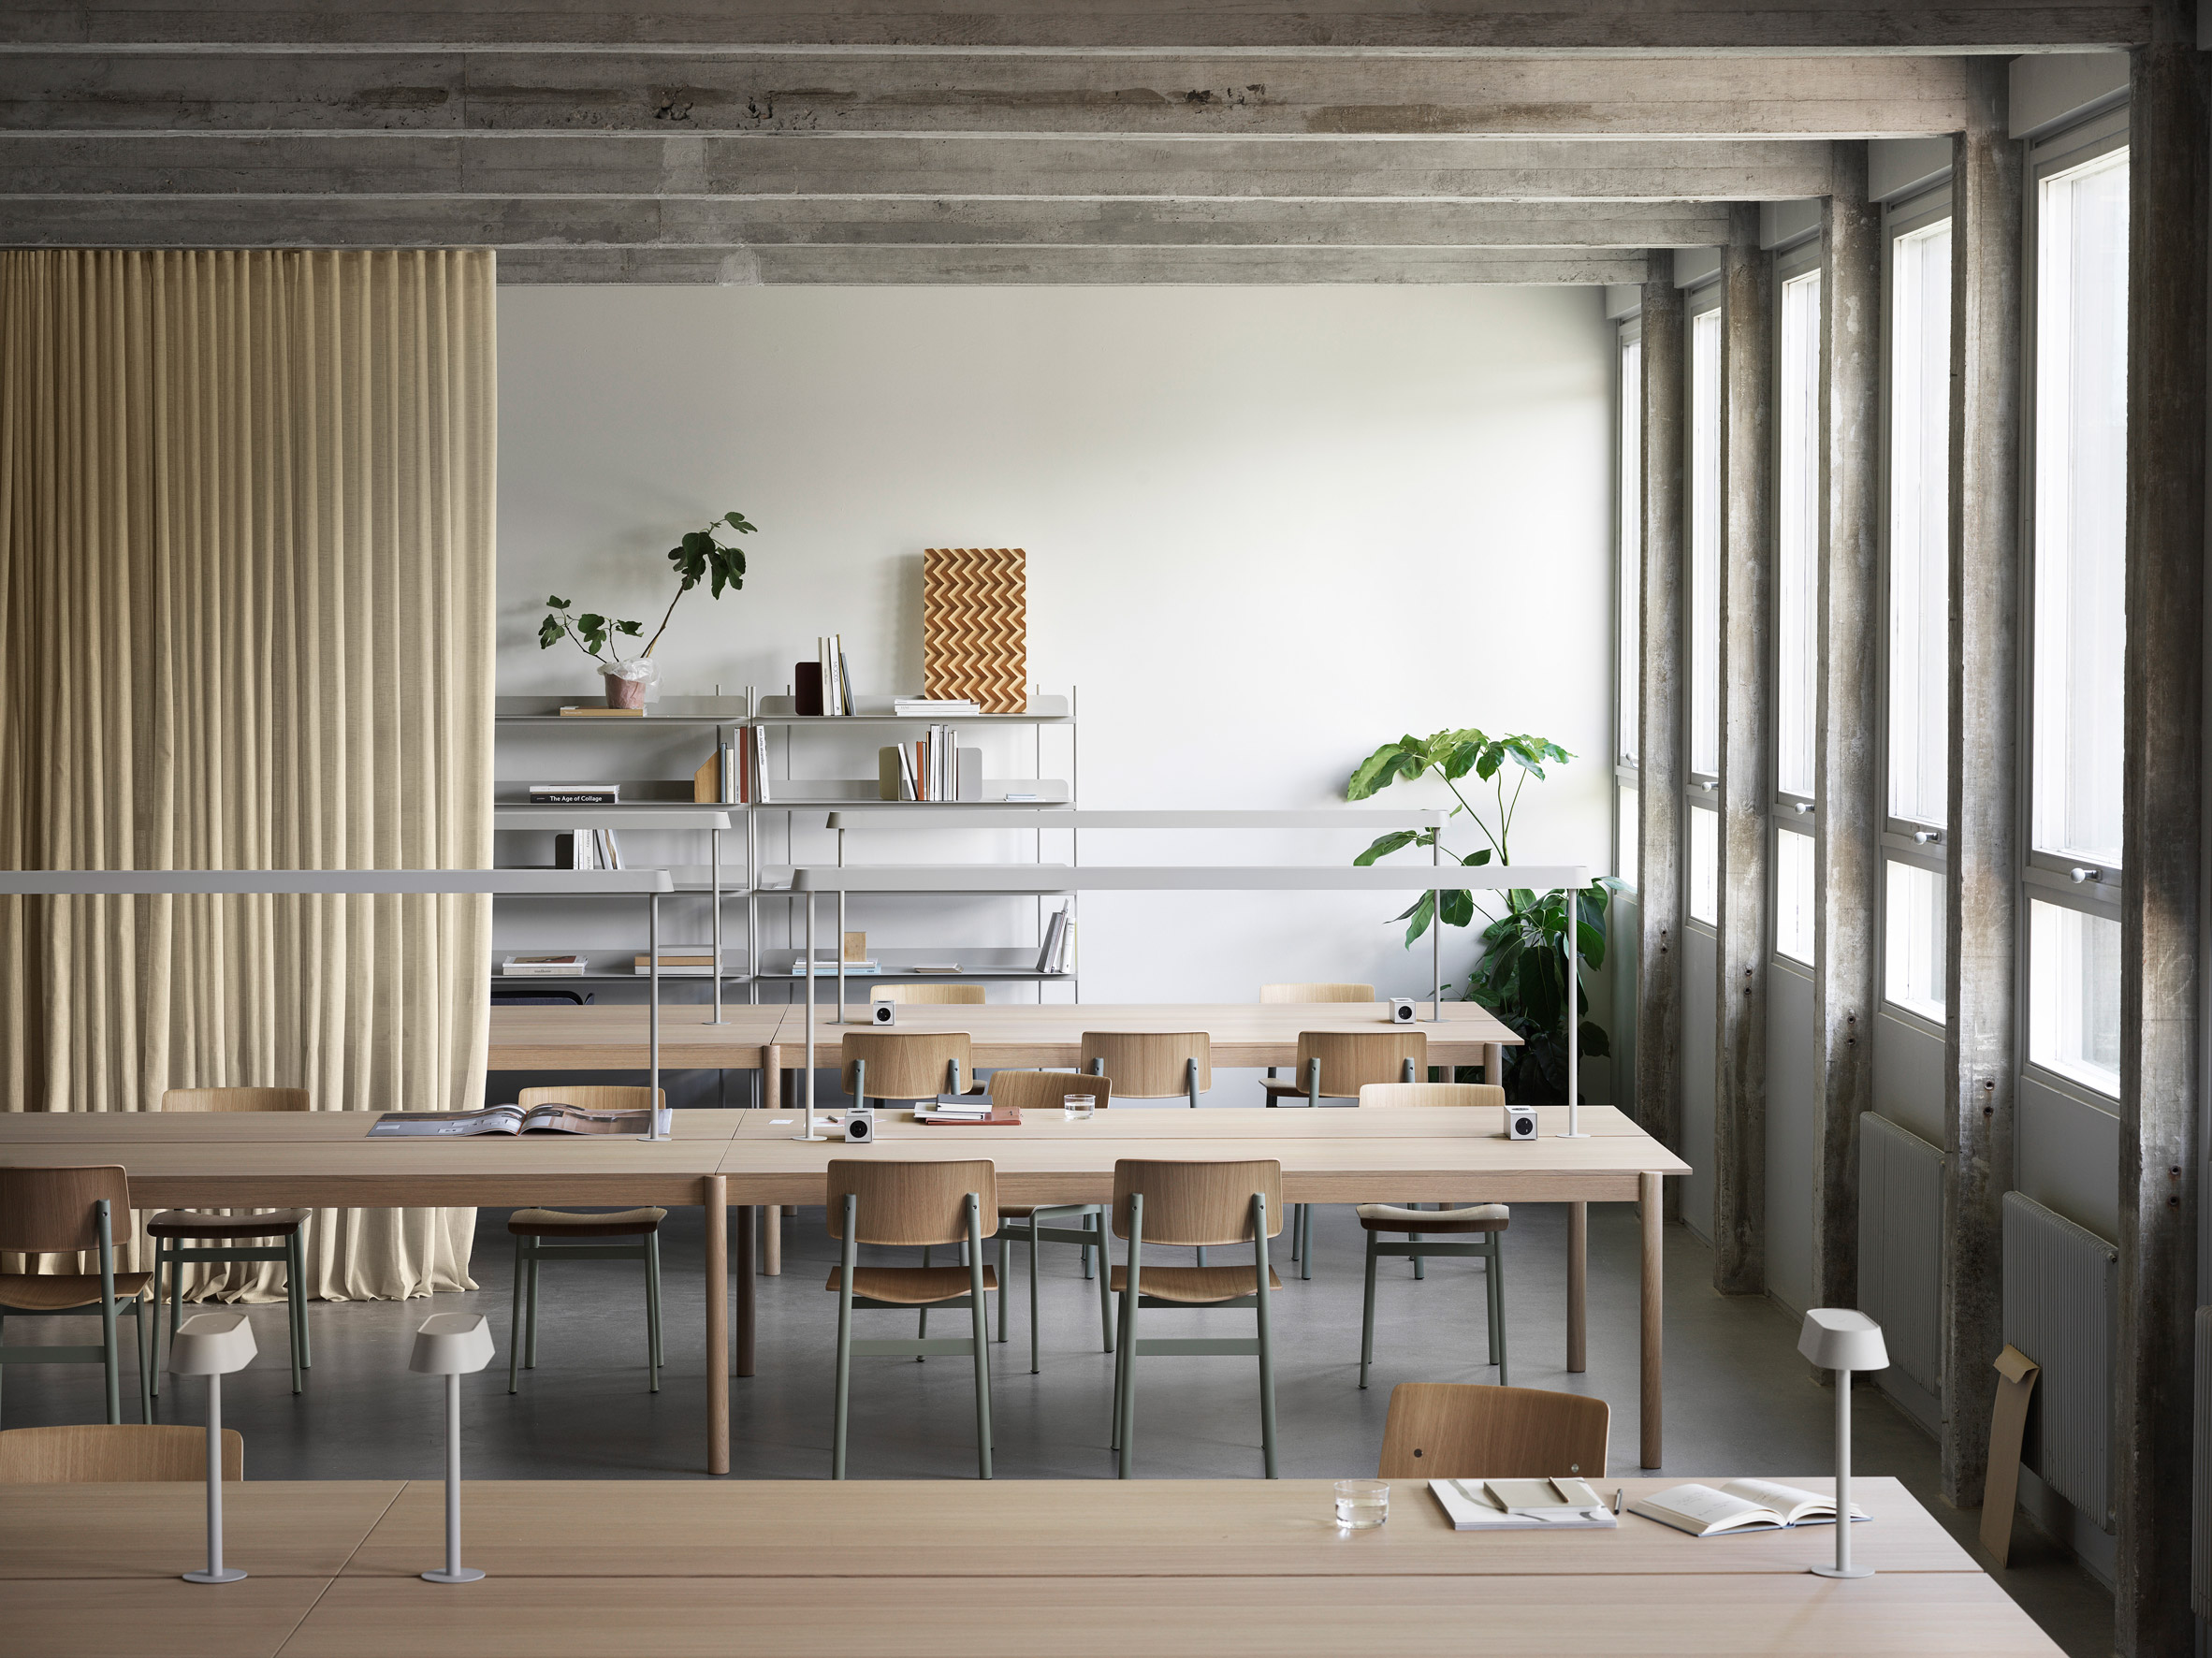 Table combination of Thomas Bentzen's The Linear System Series for Muuto